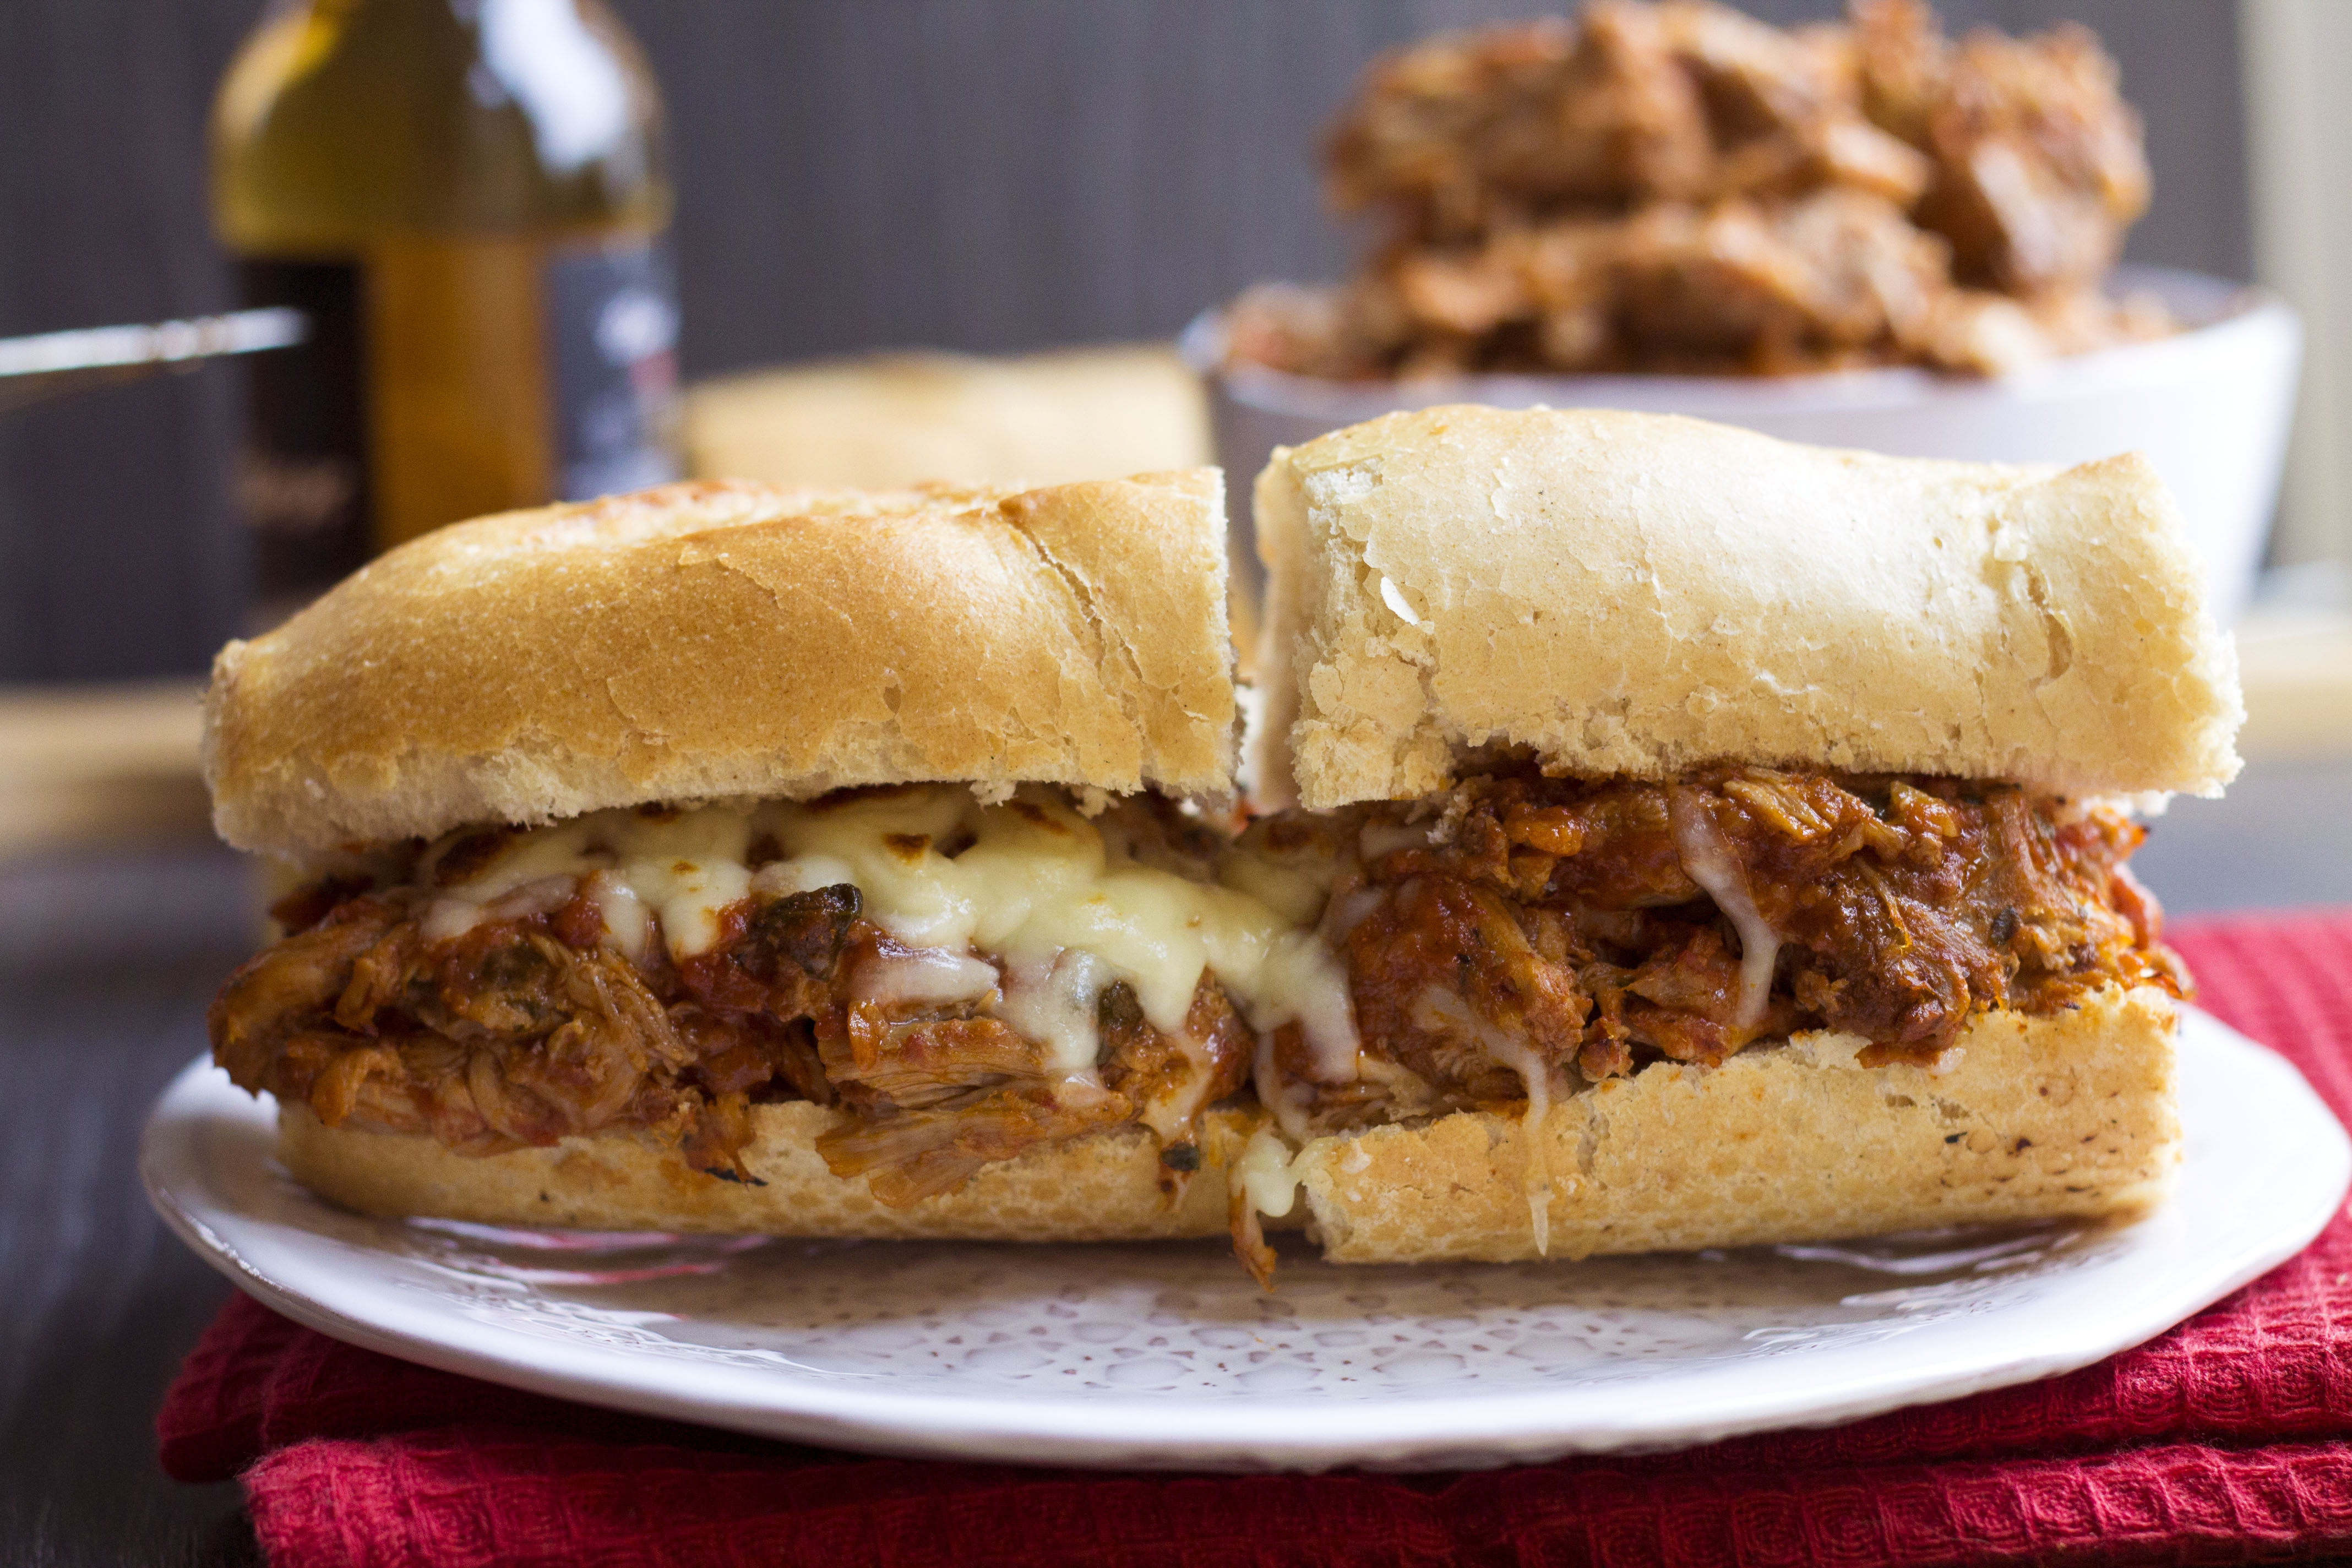 A pulled pork ciabatta sandwich